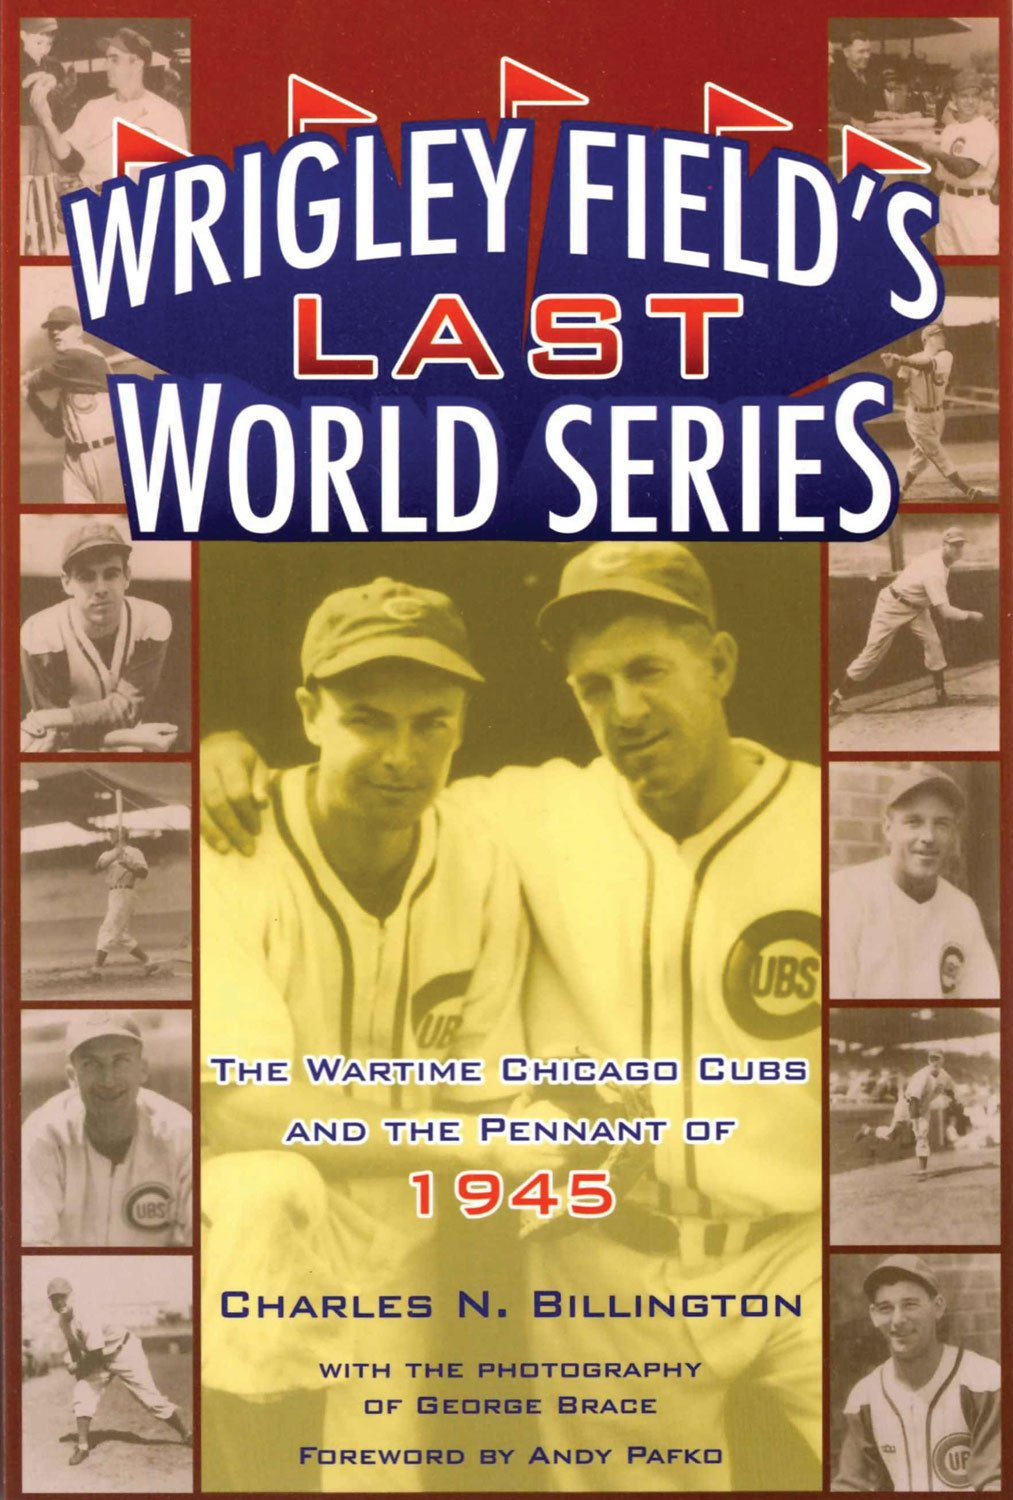 Image result for free images for Wrigley Field's Last World Series by Charles Billington